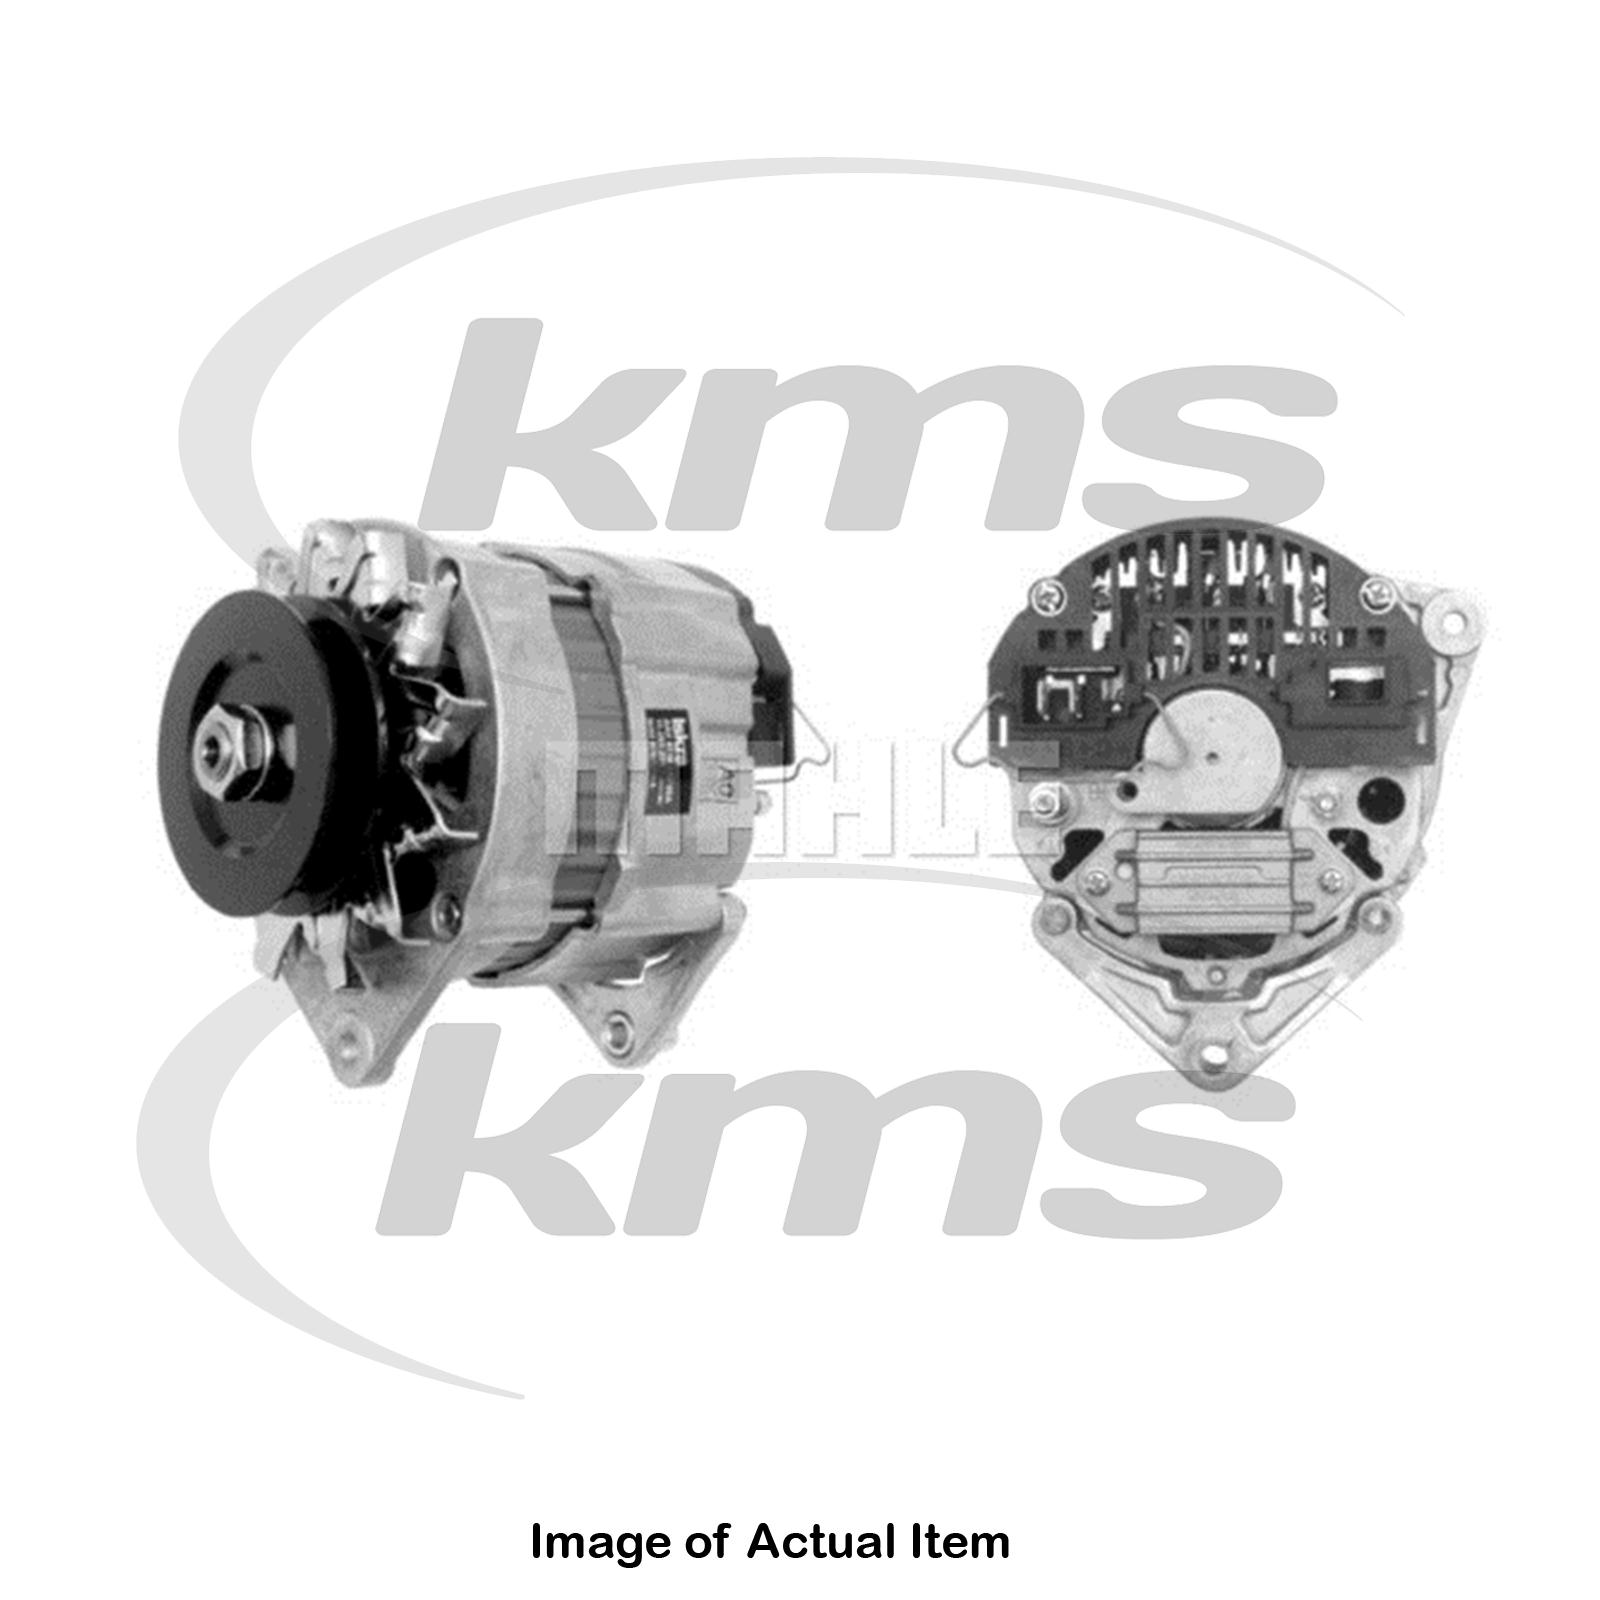 New Genuine Mahle Alternator Mg 110 Top German Quality 3838922050394 Lucas Wiring Diagram For Sentinel